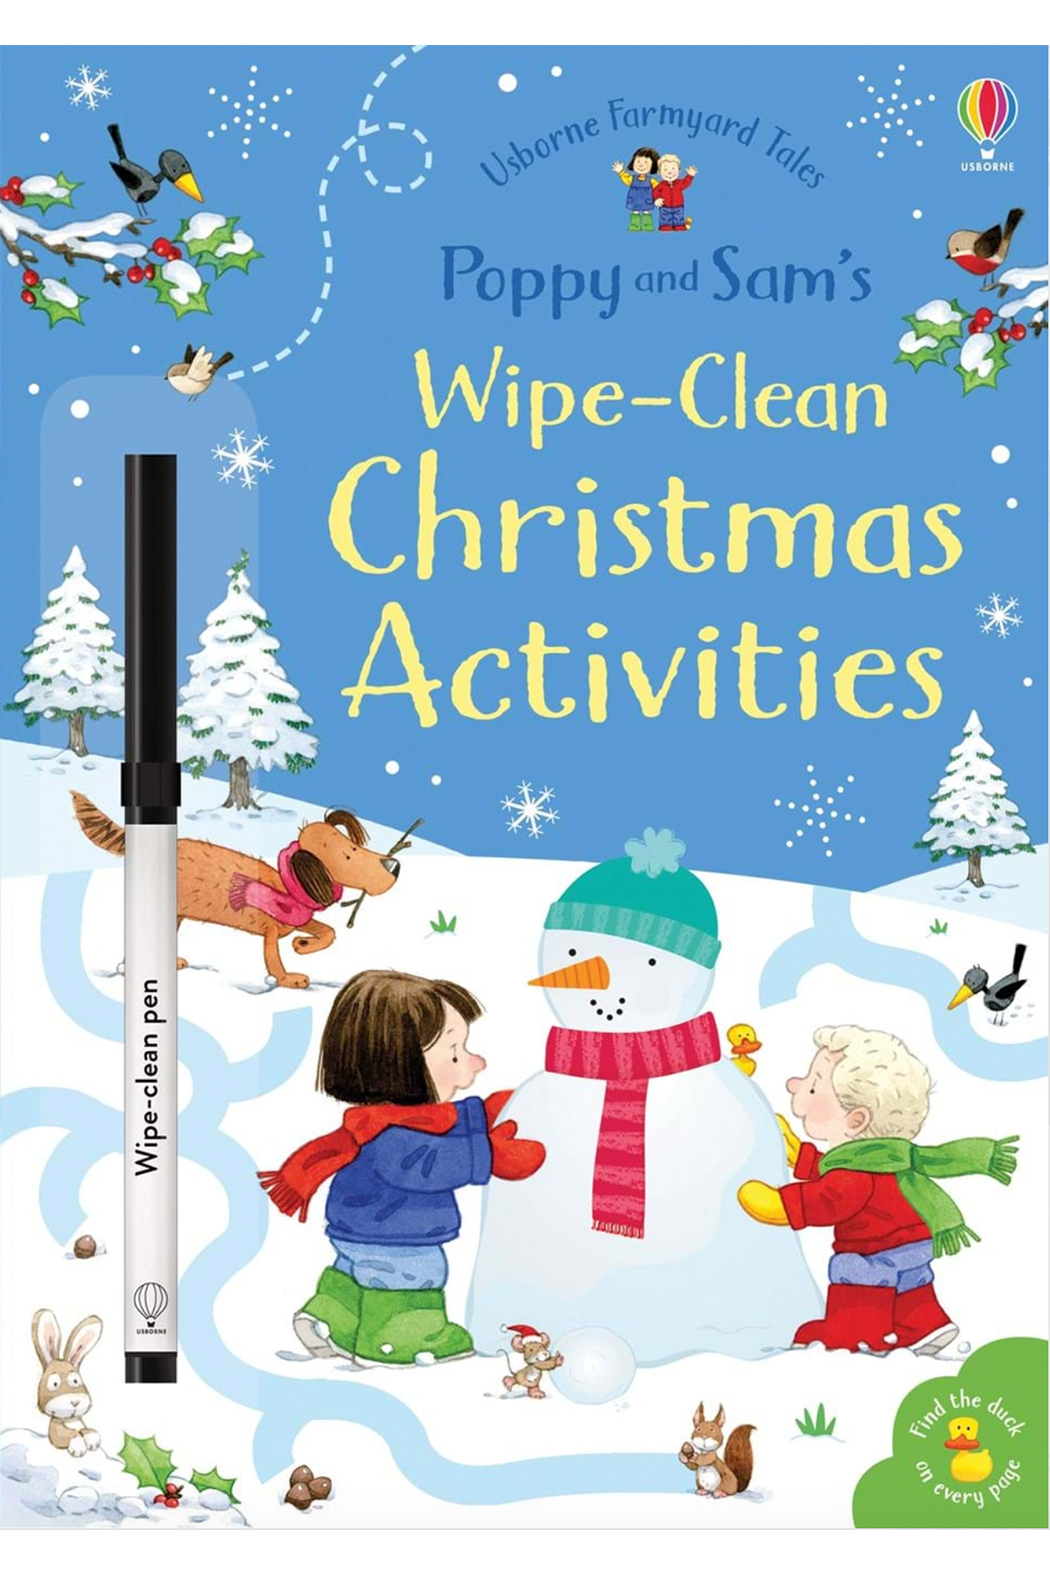 Usborne Poppy and Sam's Little Wipe-Clean Christmas Activities - Main Image